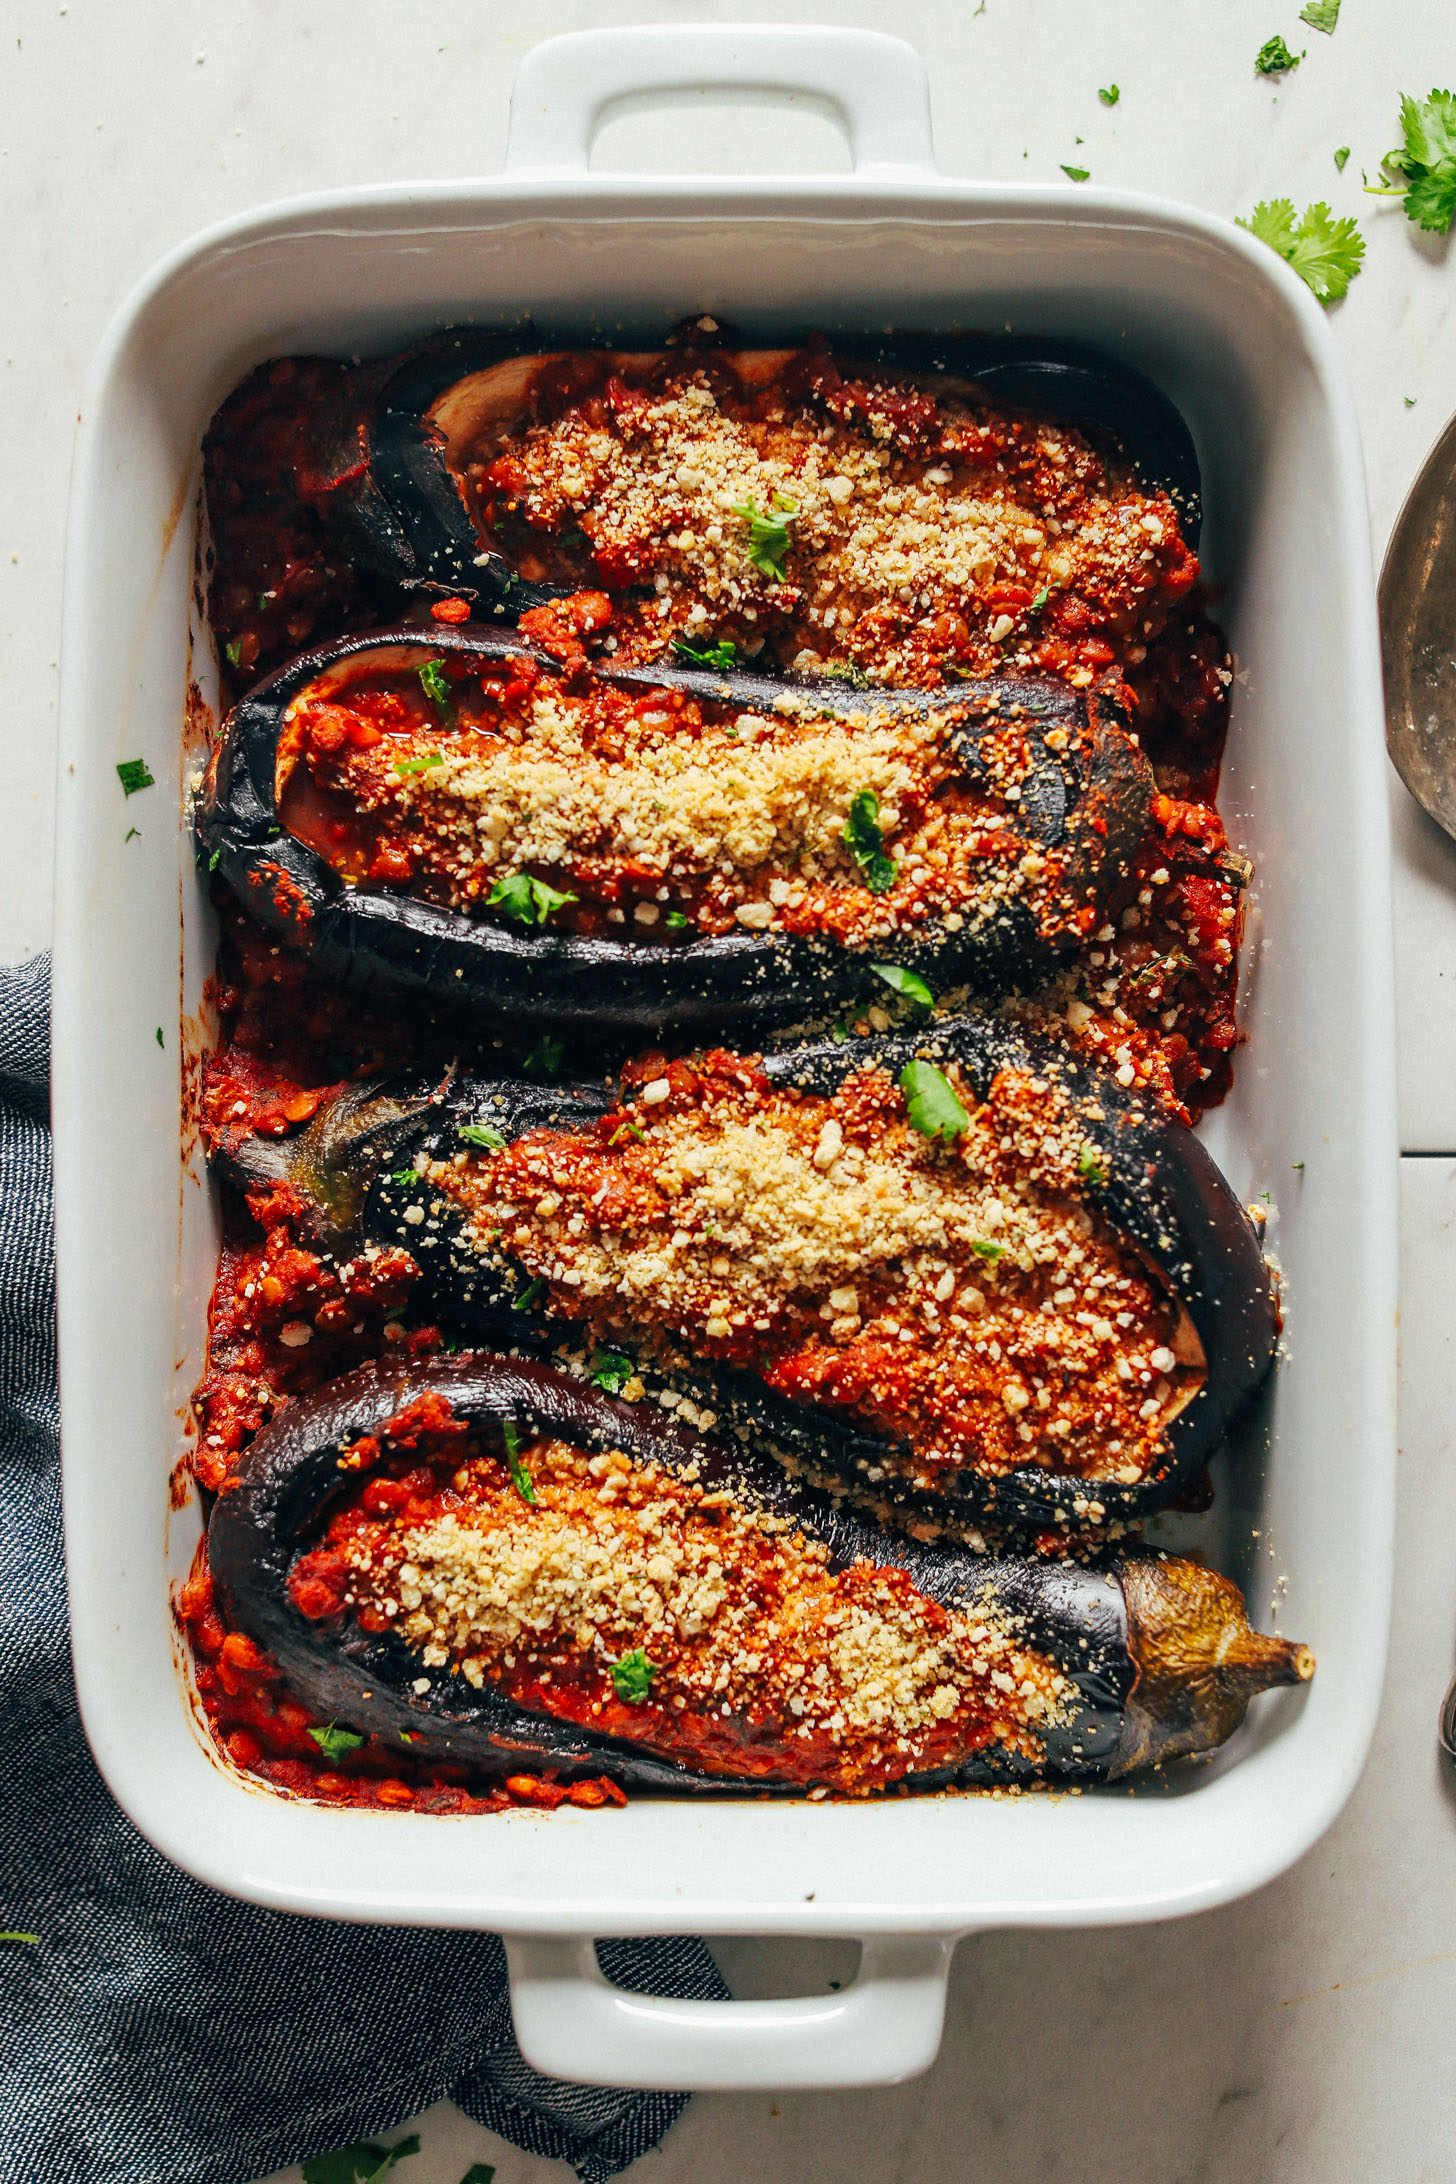 Freshly baked Moroccan Lentil-Stuffed Eggplant that's gluten-free and vegan